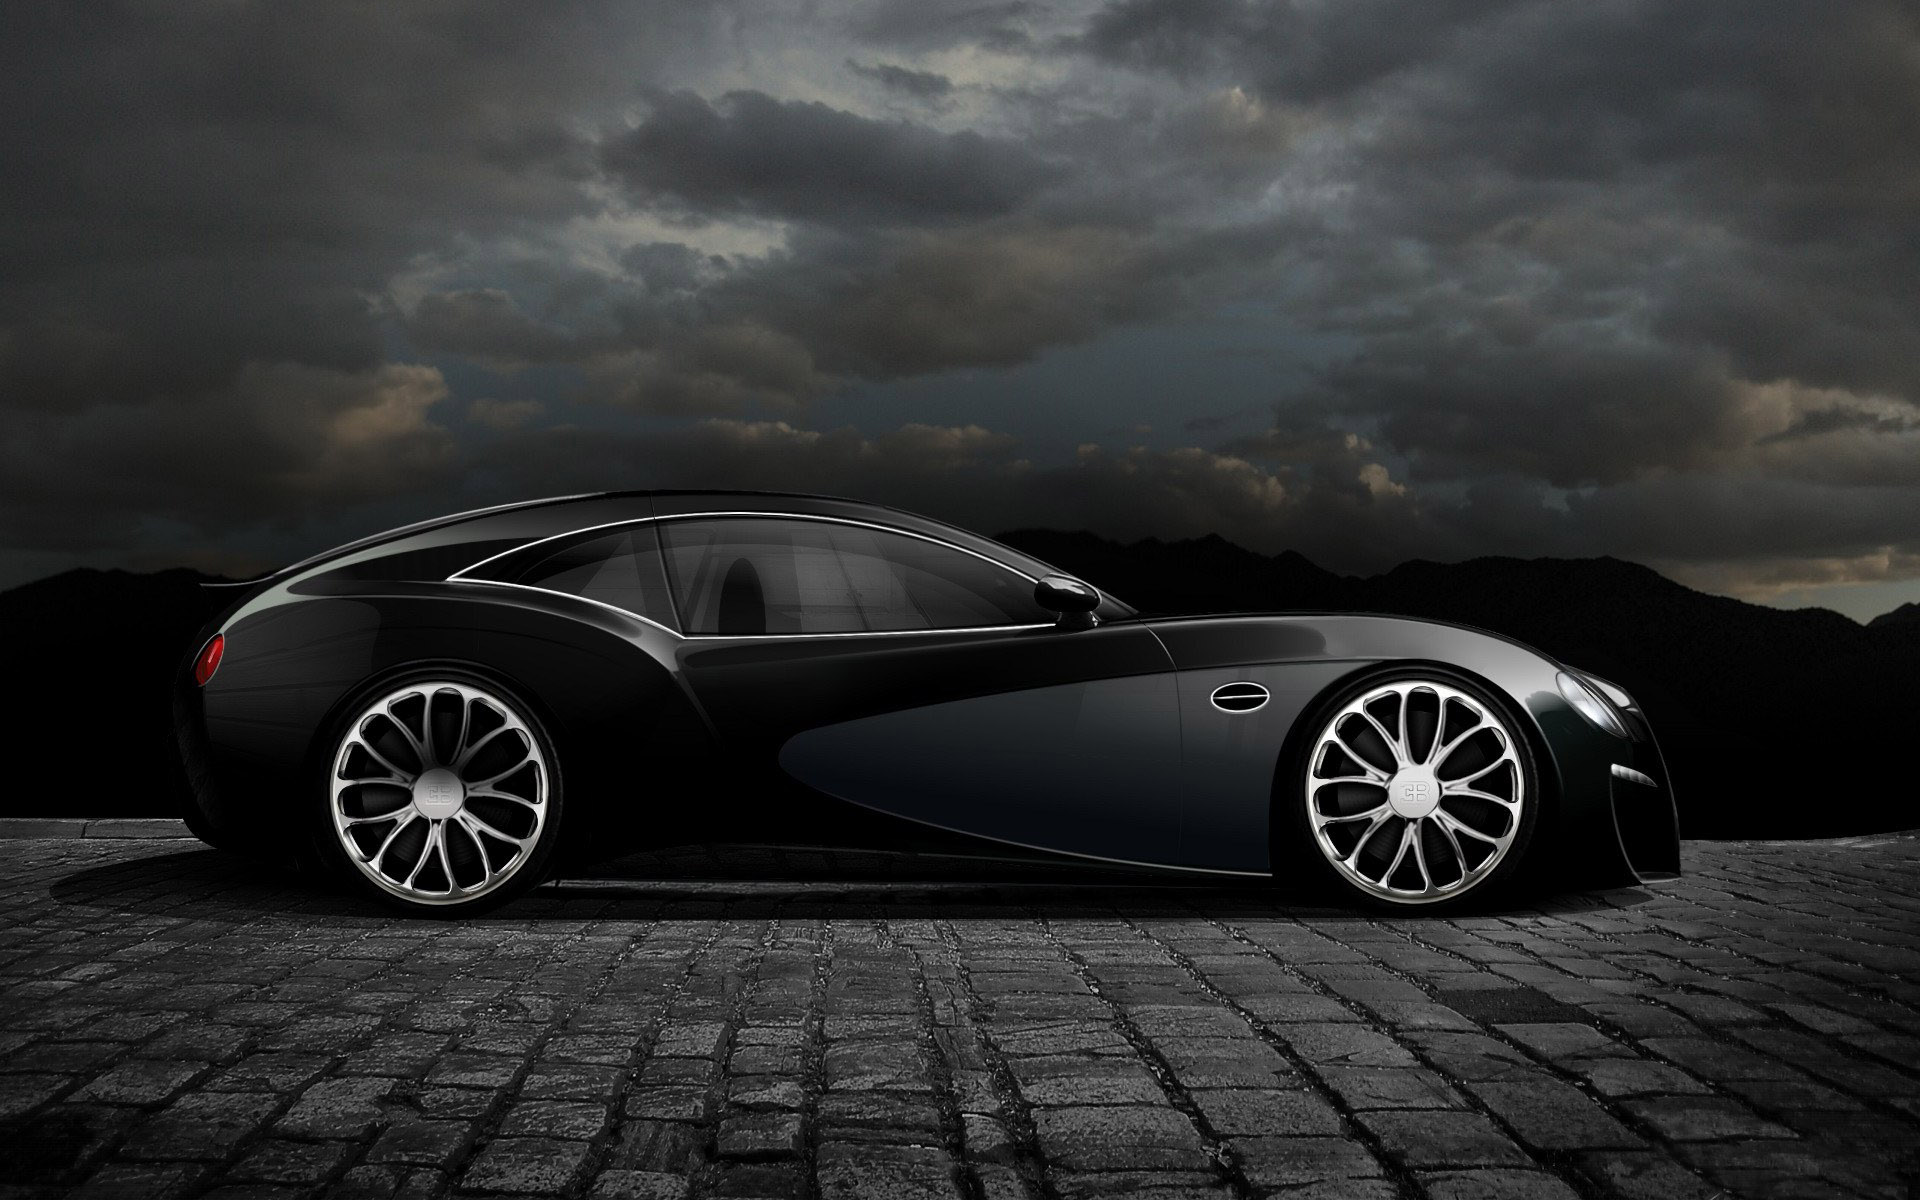 black dark cars - photo #16